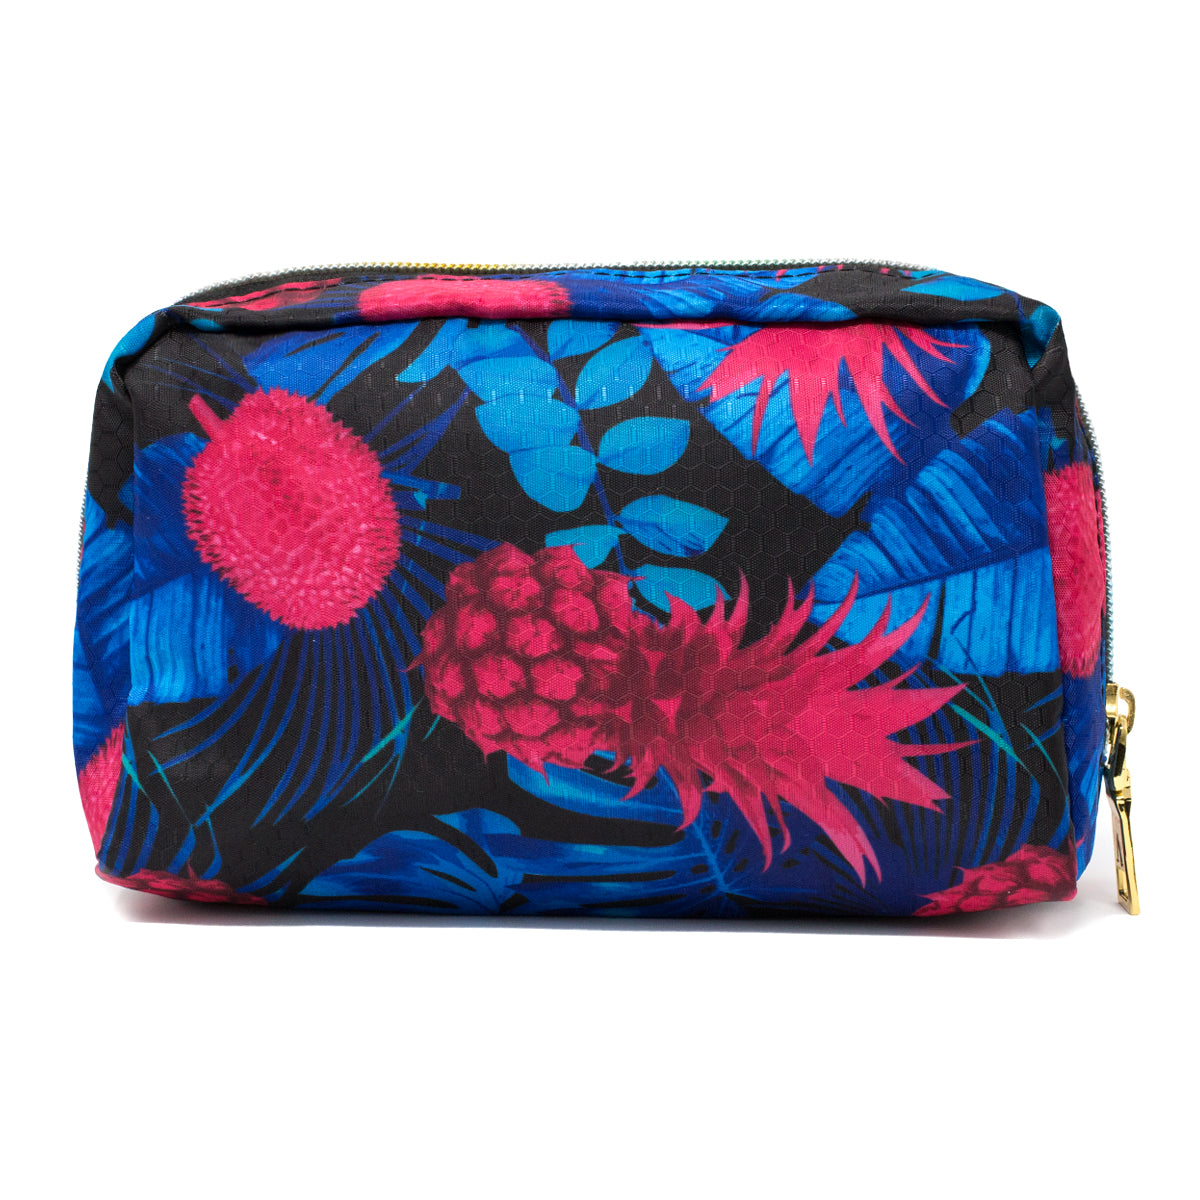 Blue & Pink printed Pineapple Makeup Bag